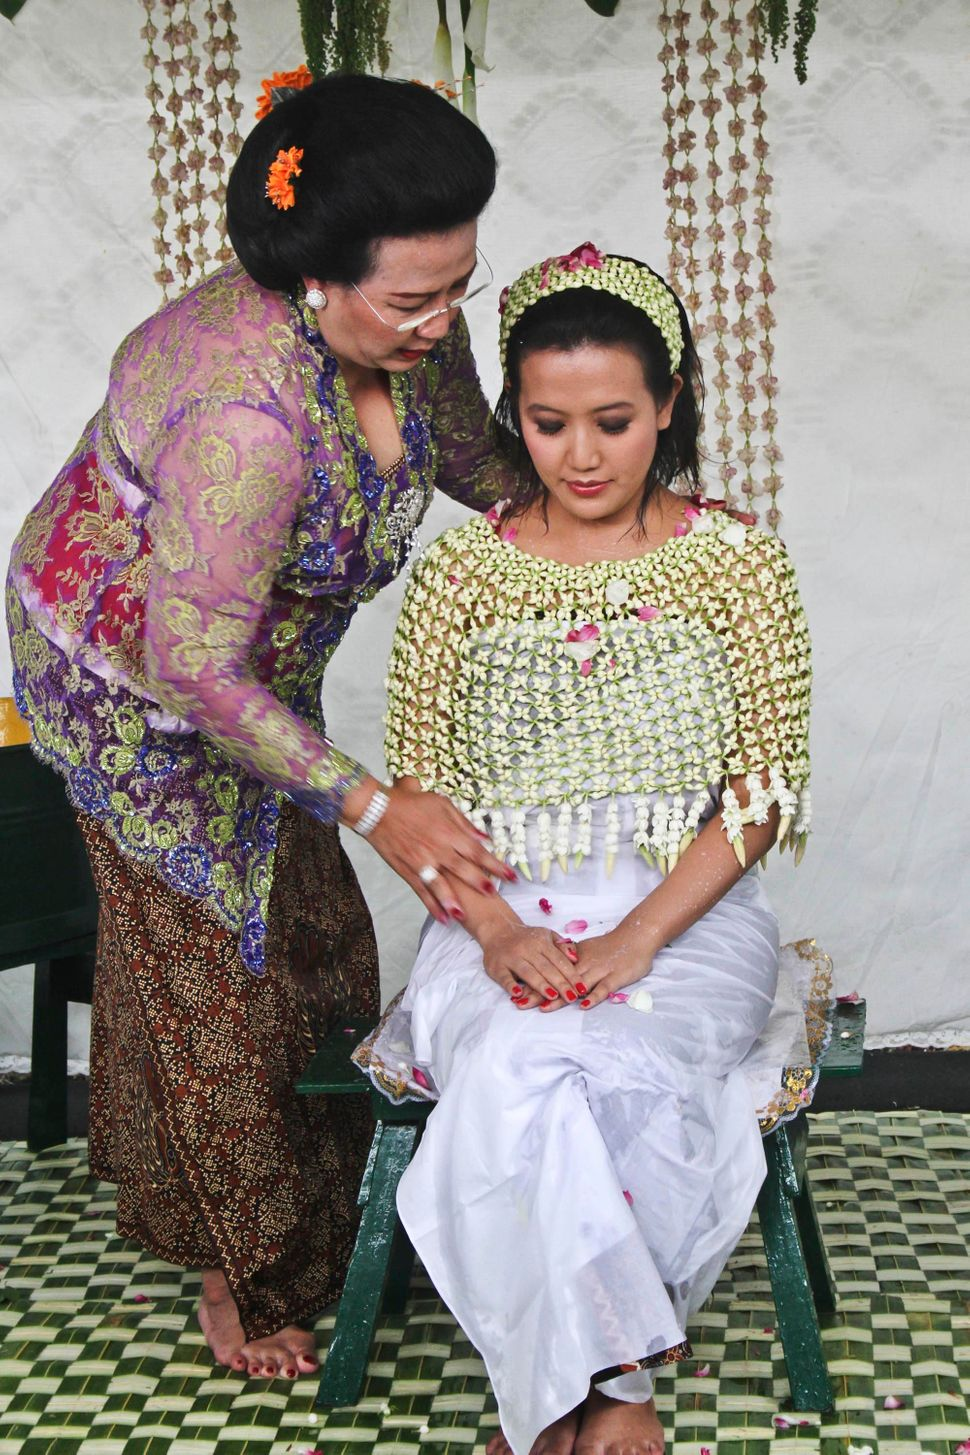 Gusti Ratu Kanjeng Hayu, is bathed by her mother Gusti Kanjeng Ratu Hemas, during a Royal Wedding on October 21, 2013 in Yogy